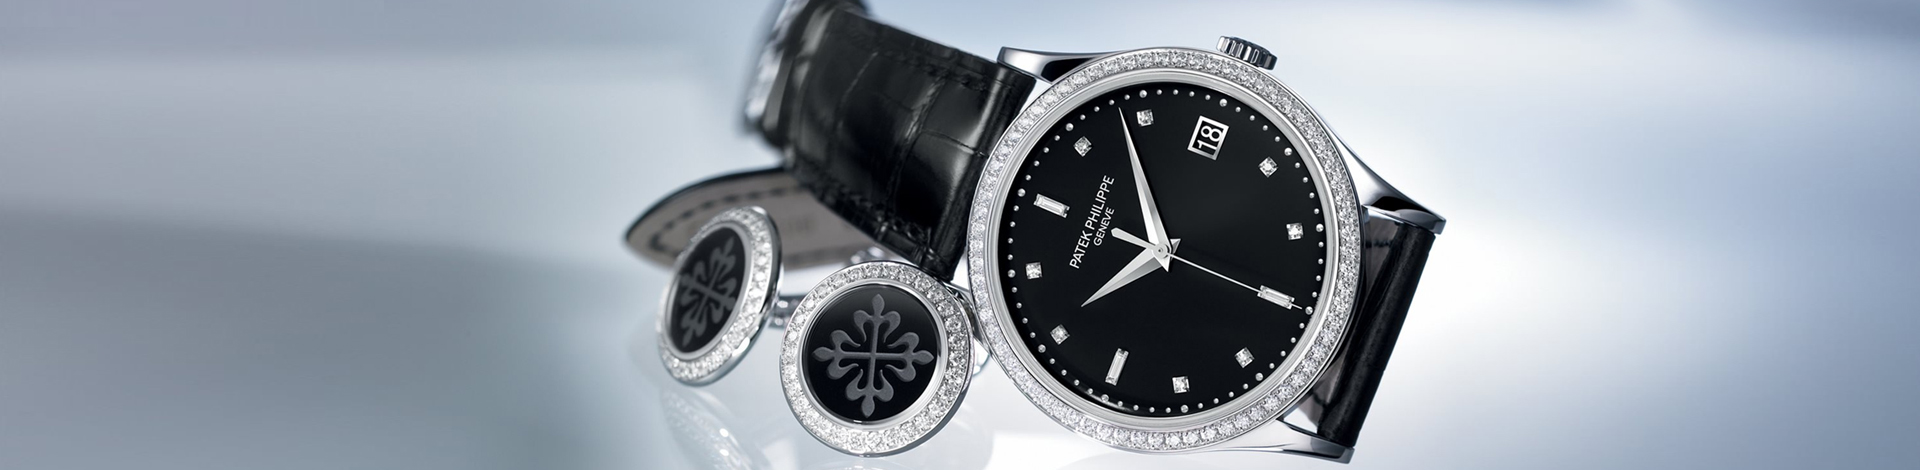 PATEK PHILIPPE NEW ARRIVALS - FEBRUARY 2021 NEWS article hero image